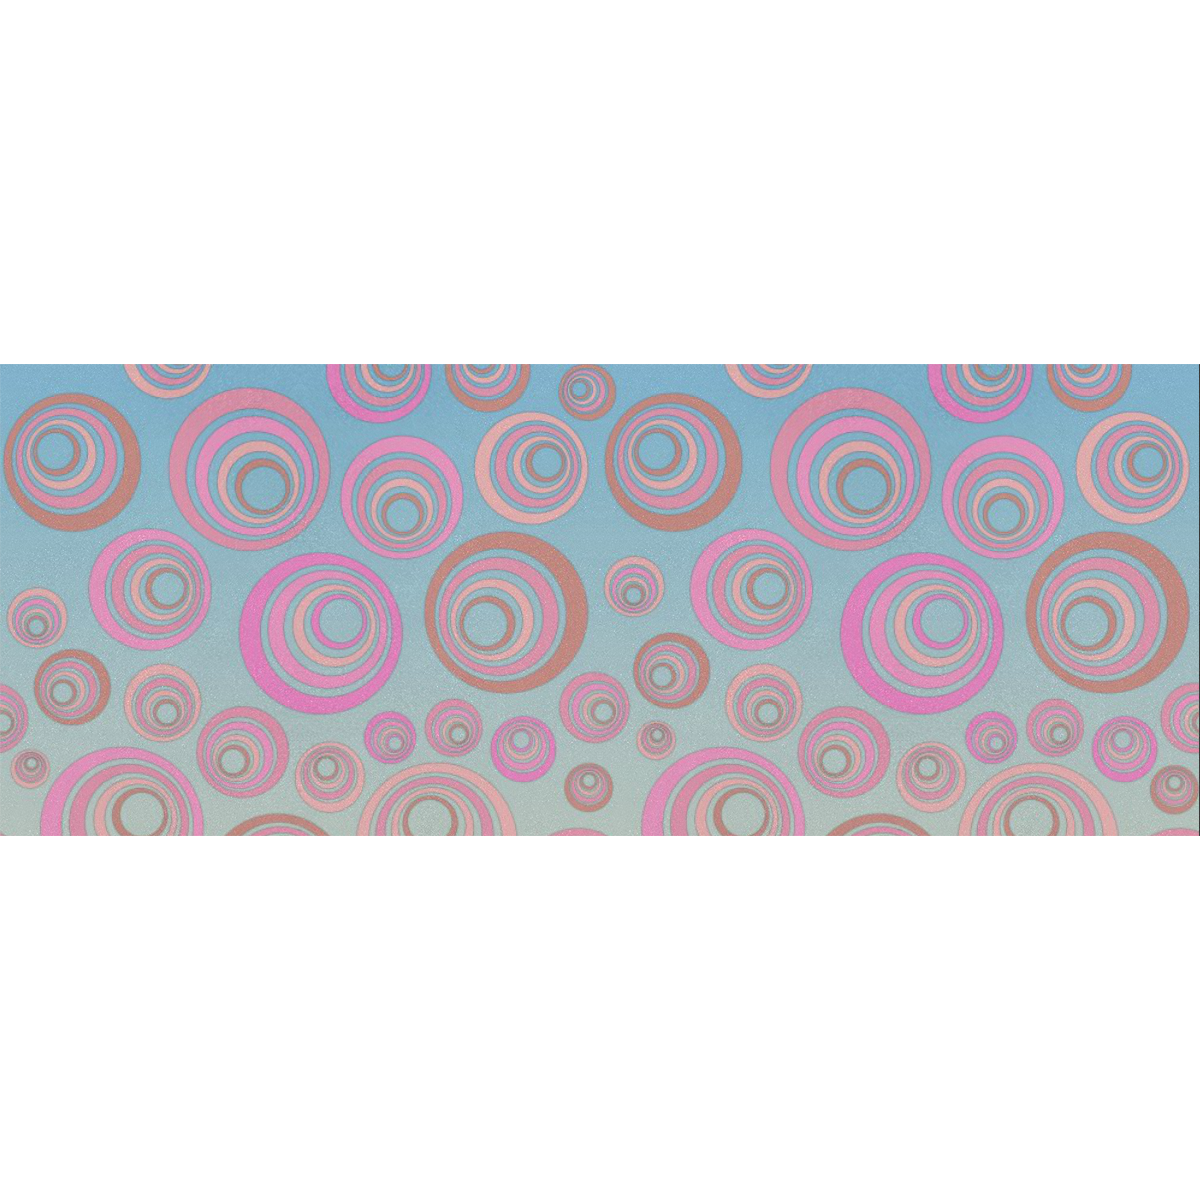 """Retro Psychedelic Pink on Blue Gift Wrapping Paper 58""""x 23"""" (1 Roll)"""